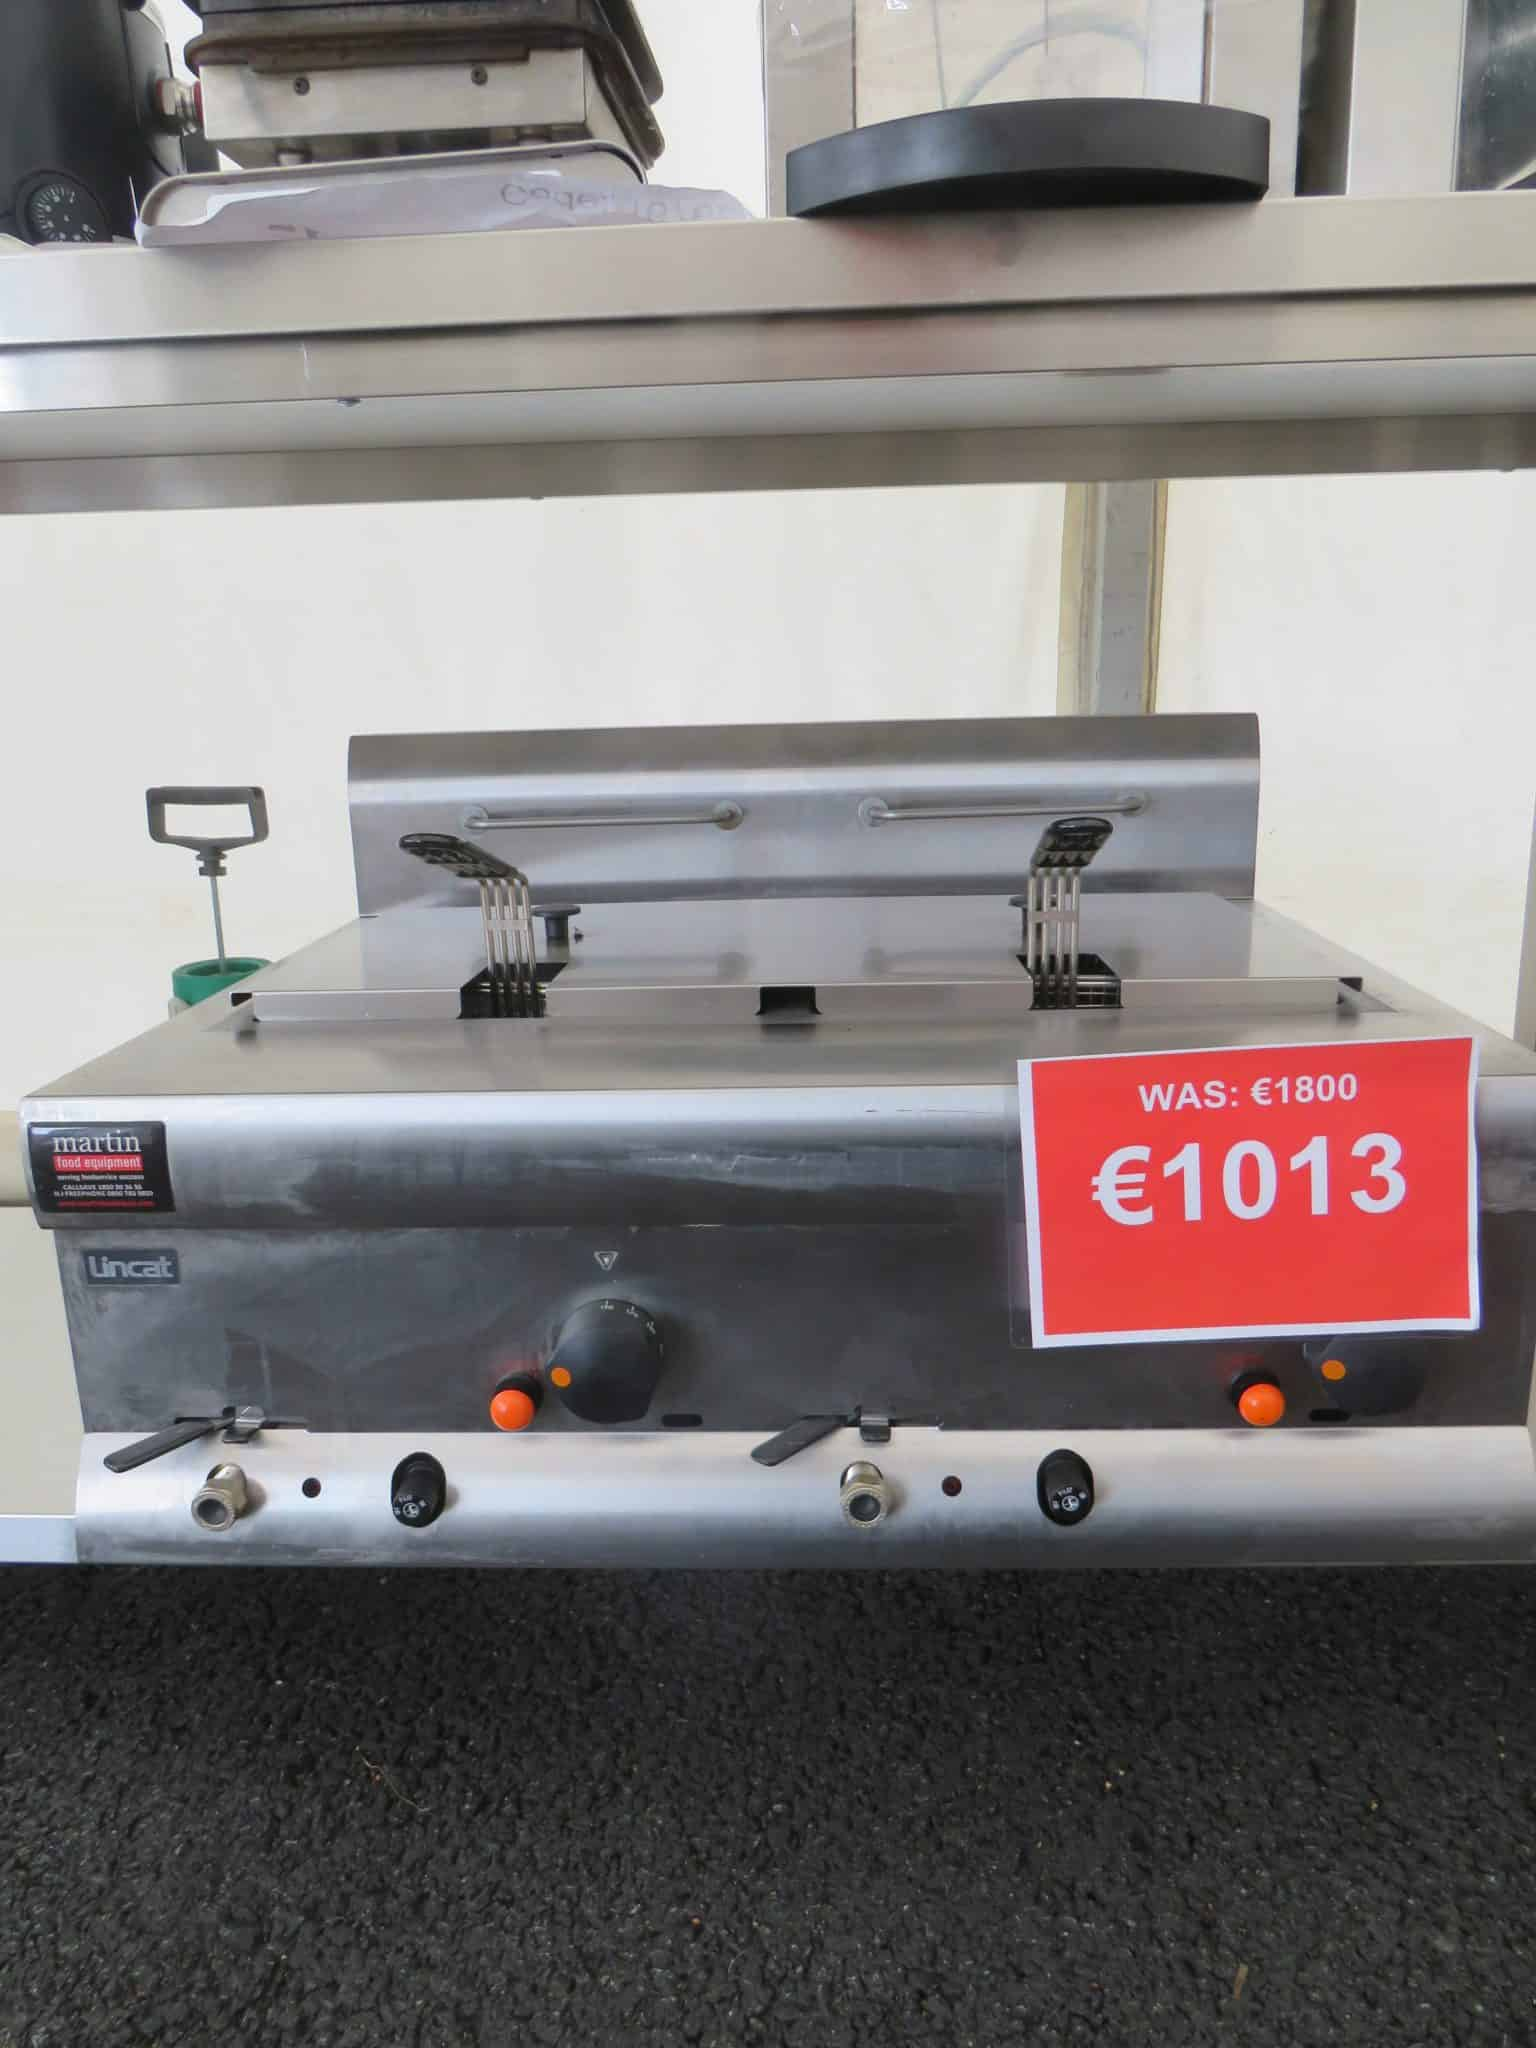 Martin Food Equipment IMG_1166 Flash Sale - Extended Miscellaneous